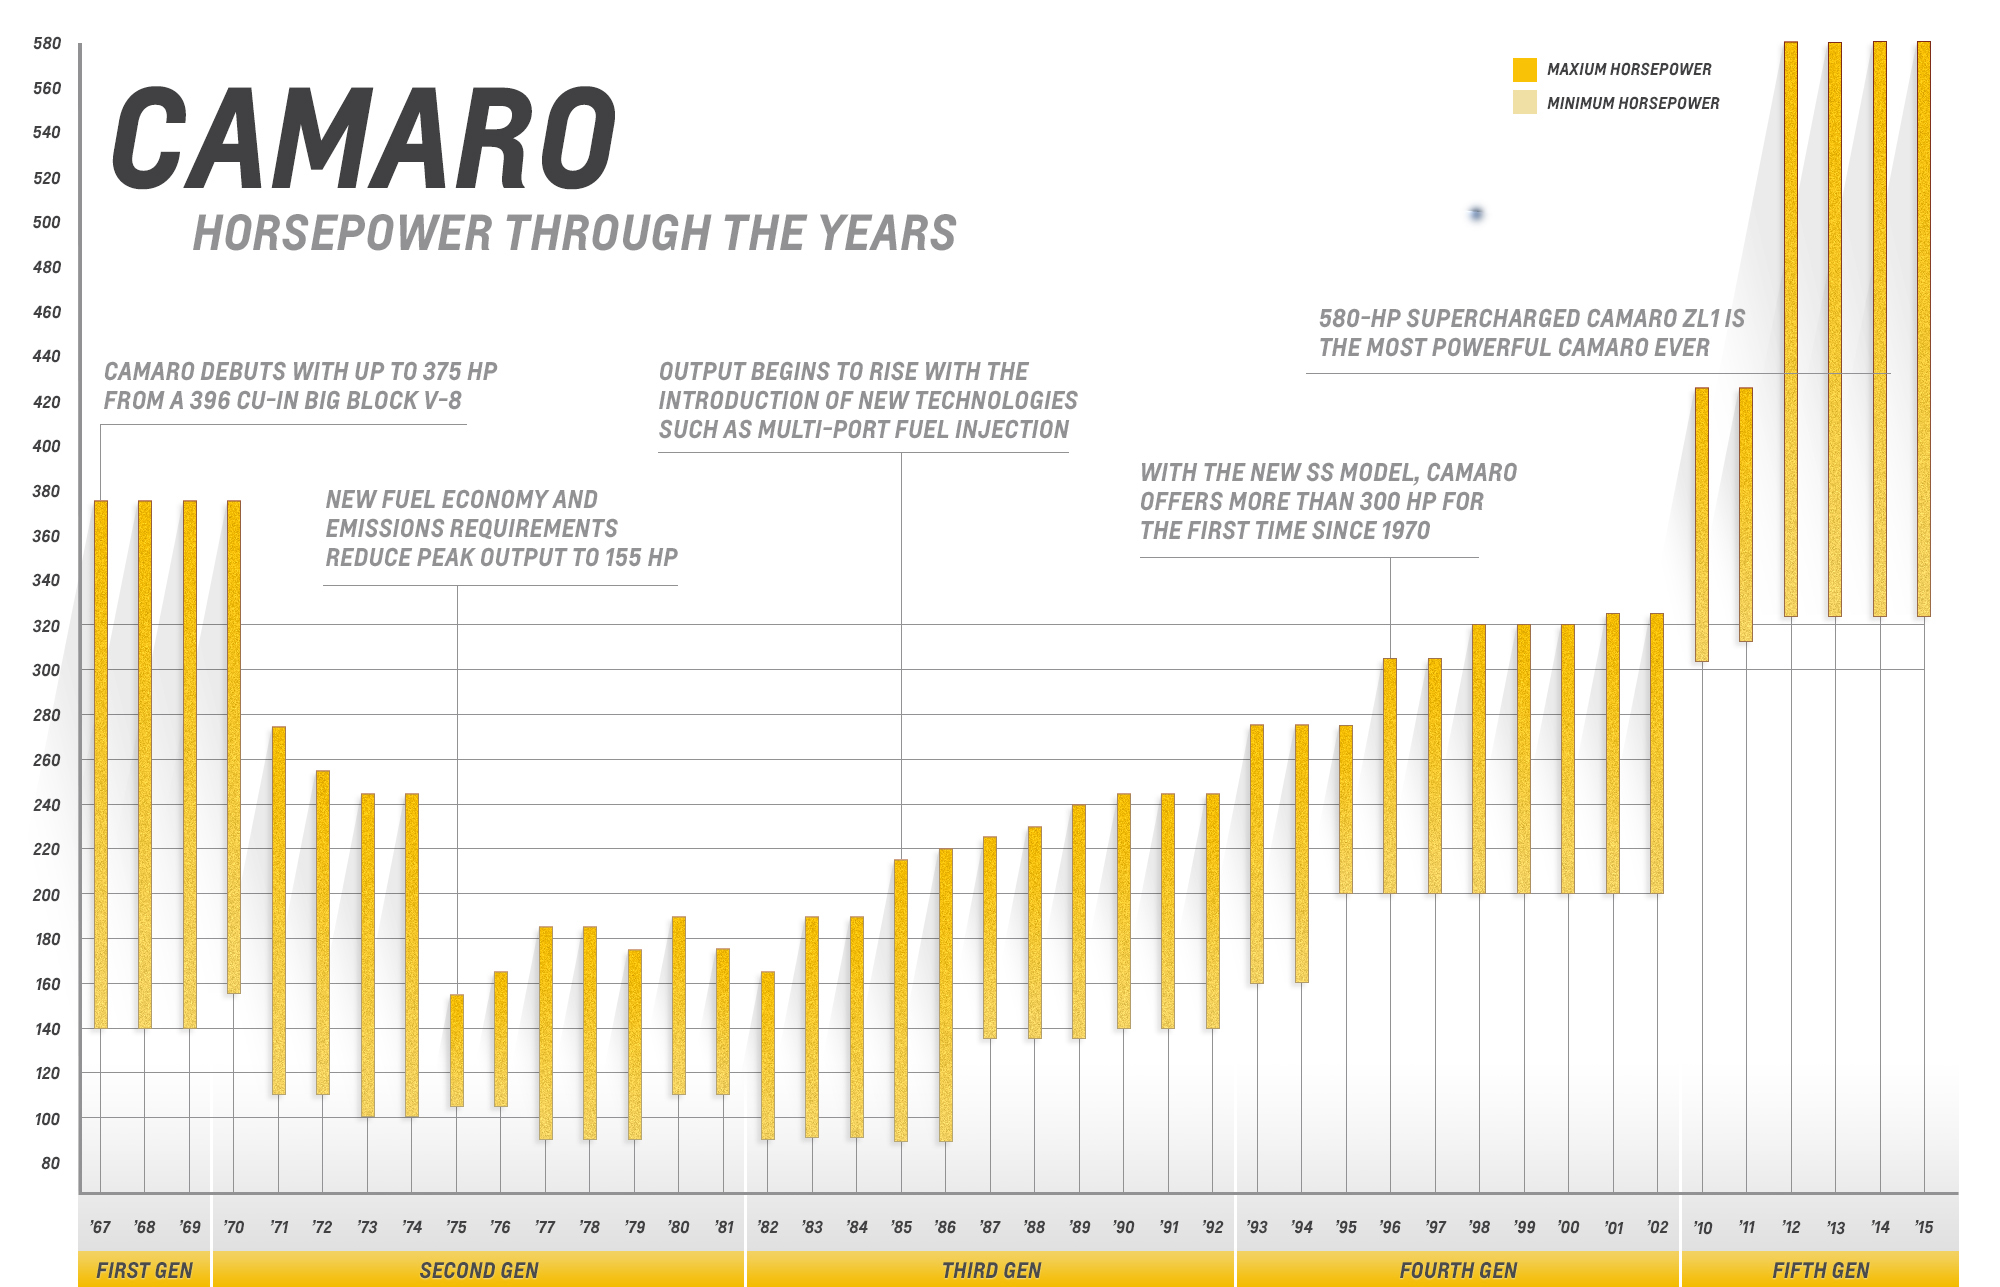 Chevrolet Camaro Horsepower Over the Years